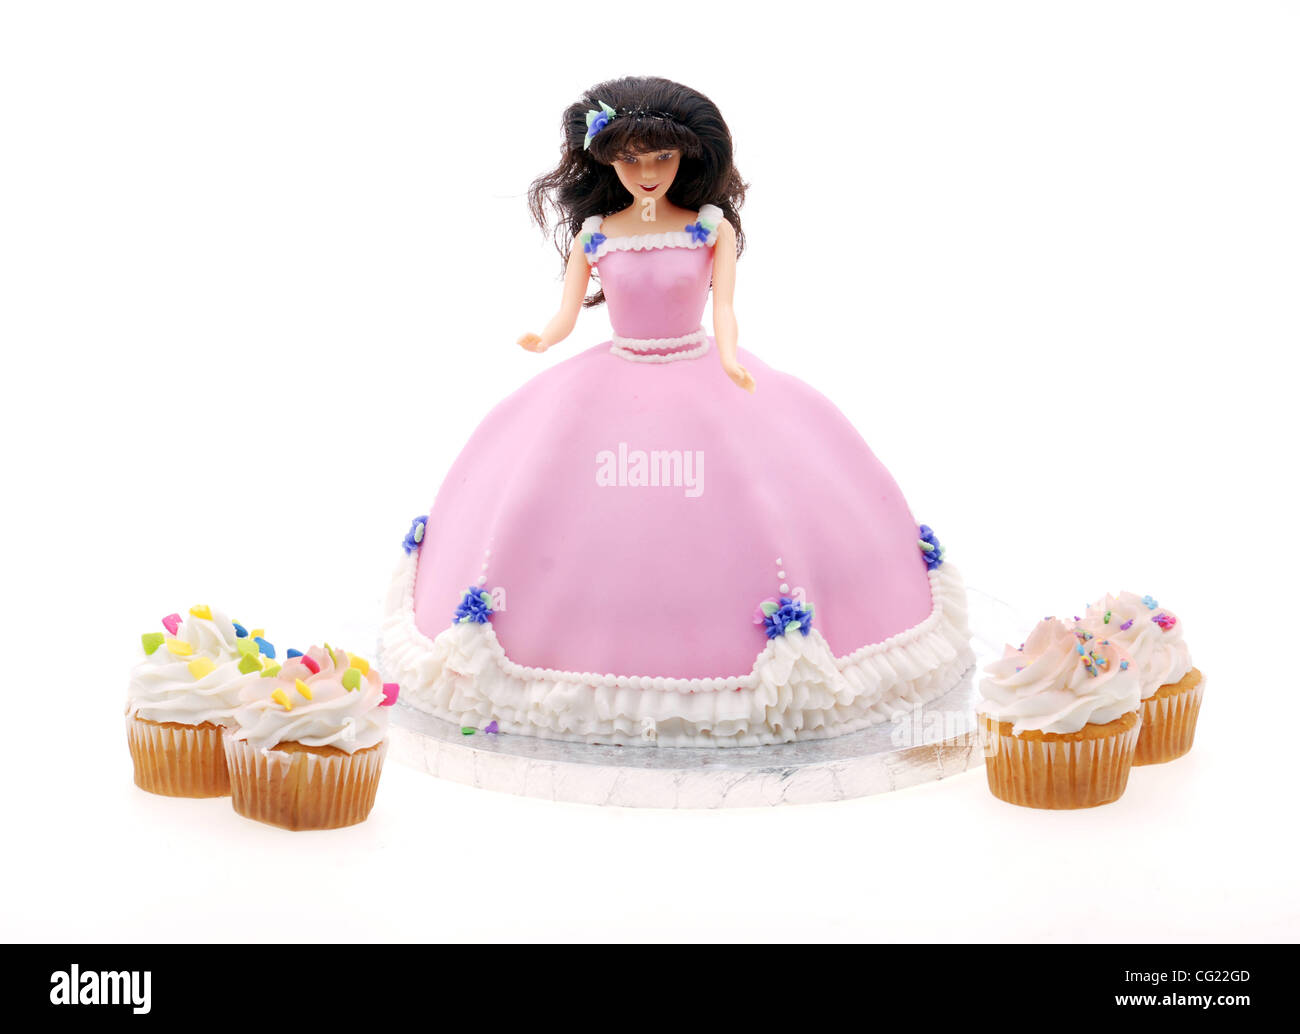 Astounding A Birthday Cake In The Shape Of A Doll July 20 2007 Sacramento Birthday Cards Printable Inklcafe Filternl